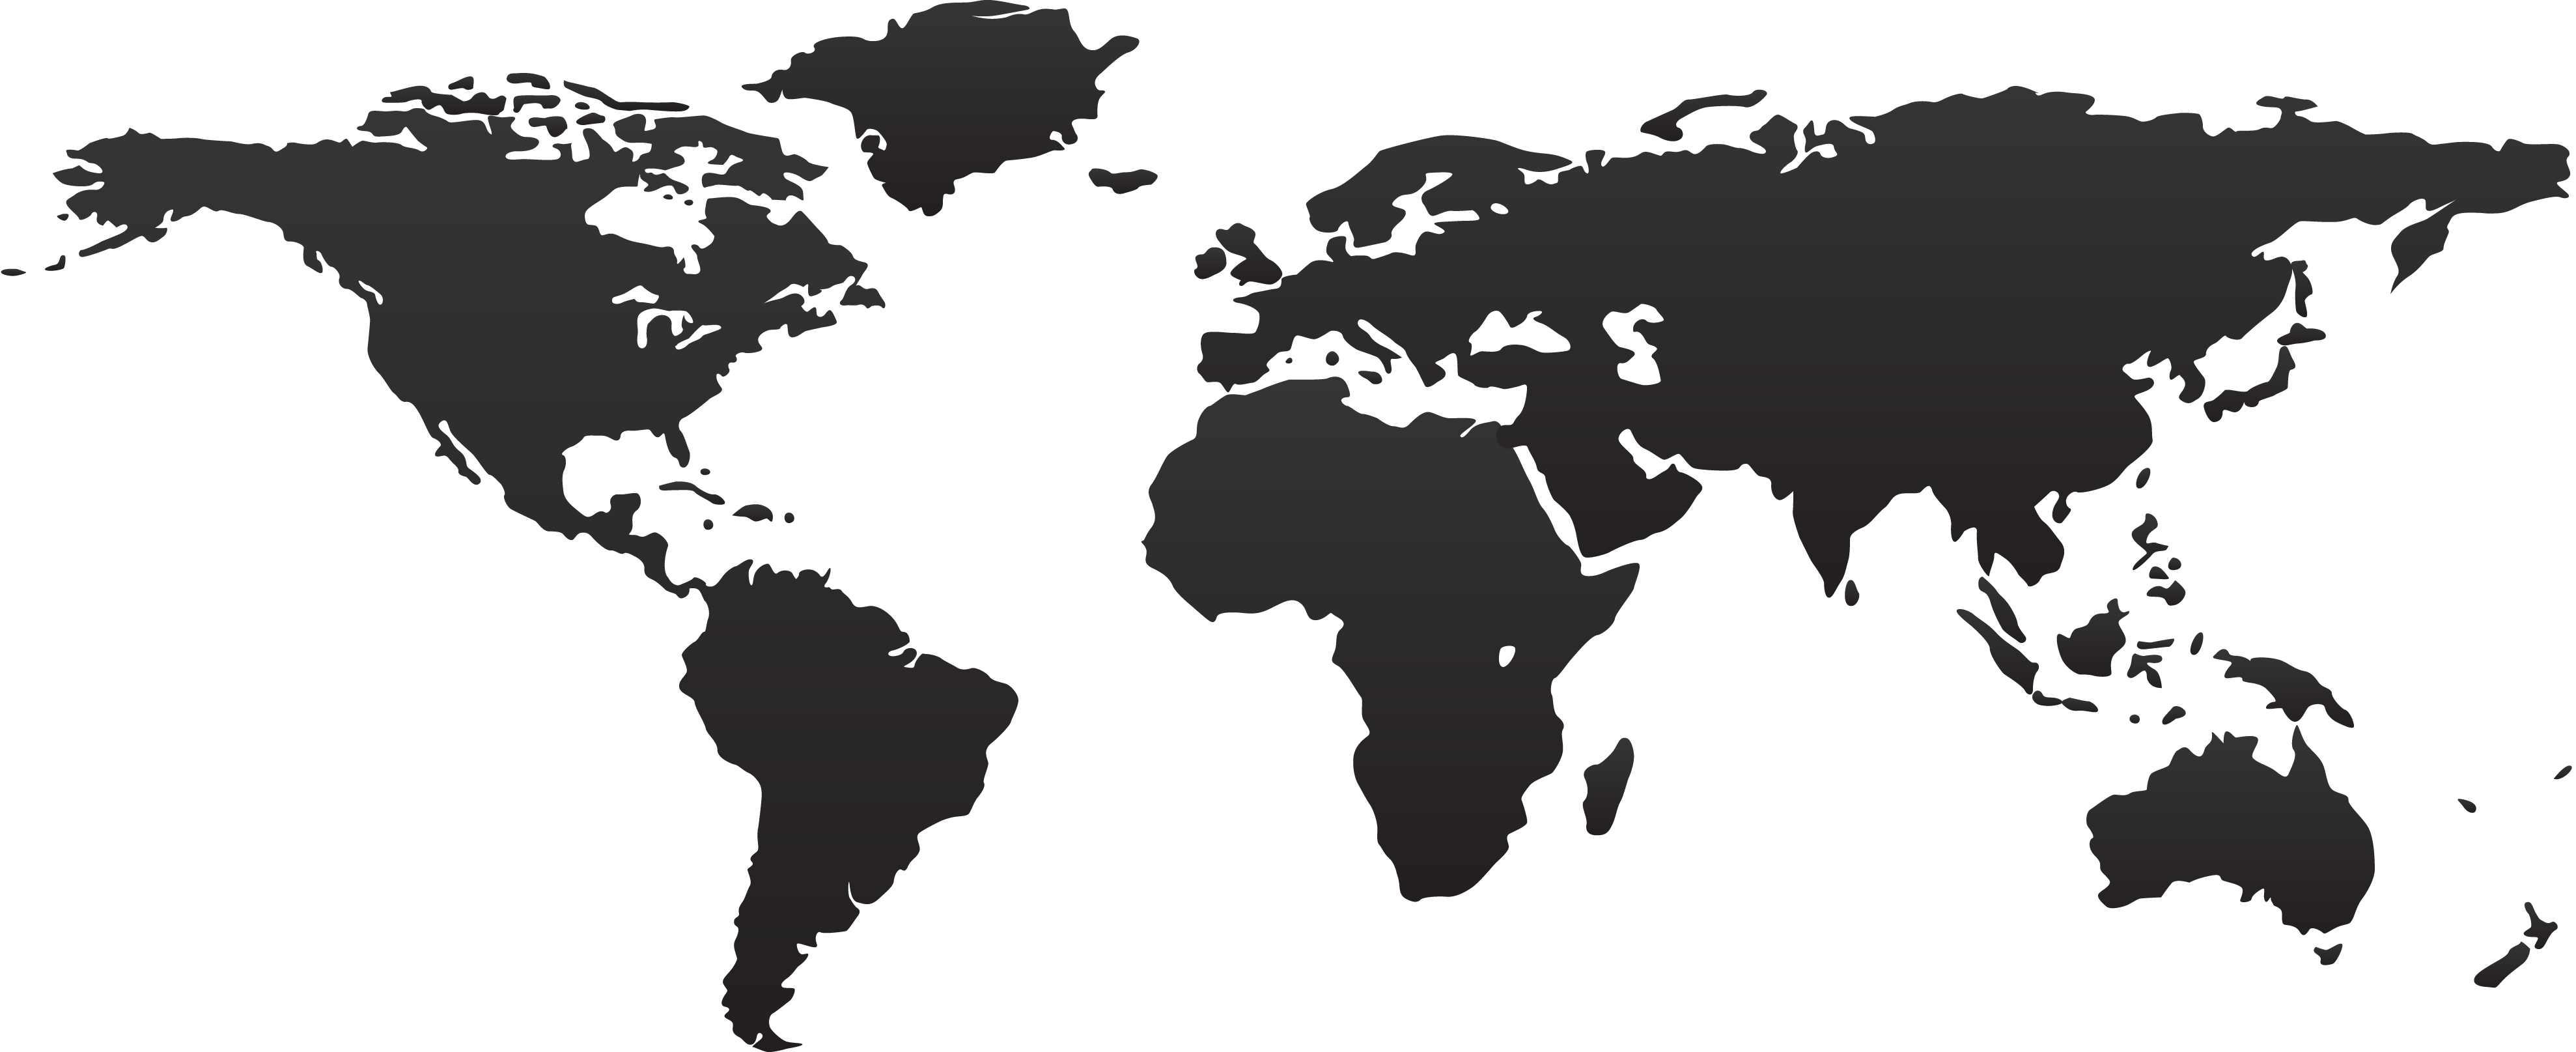 World map PNG image free Download